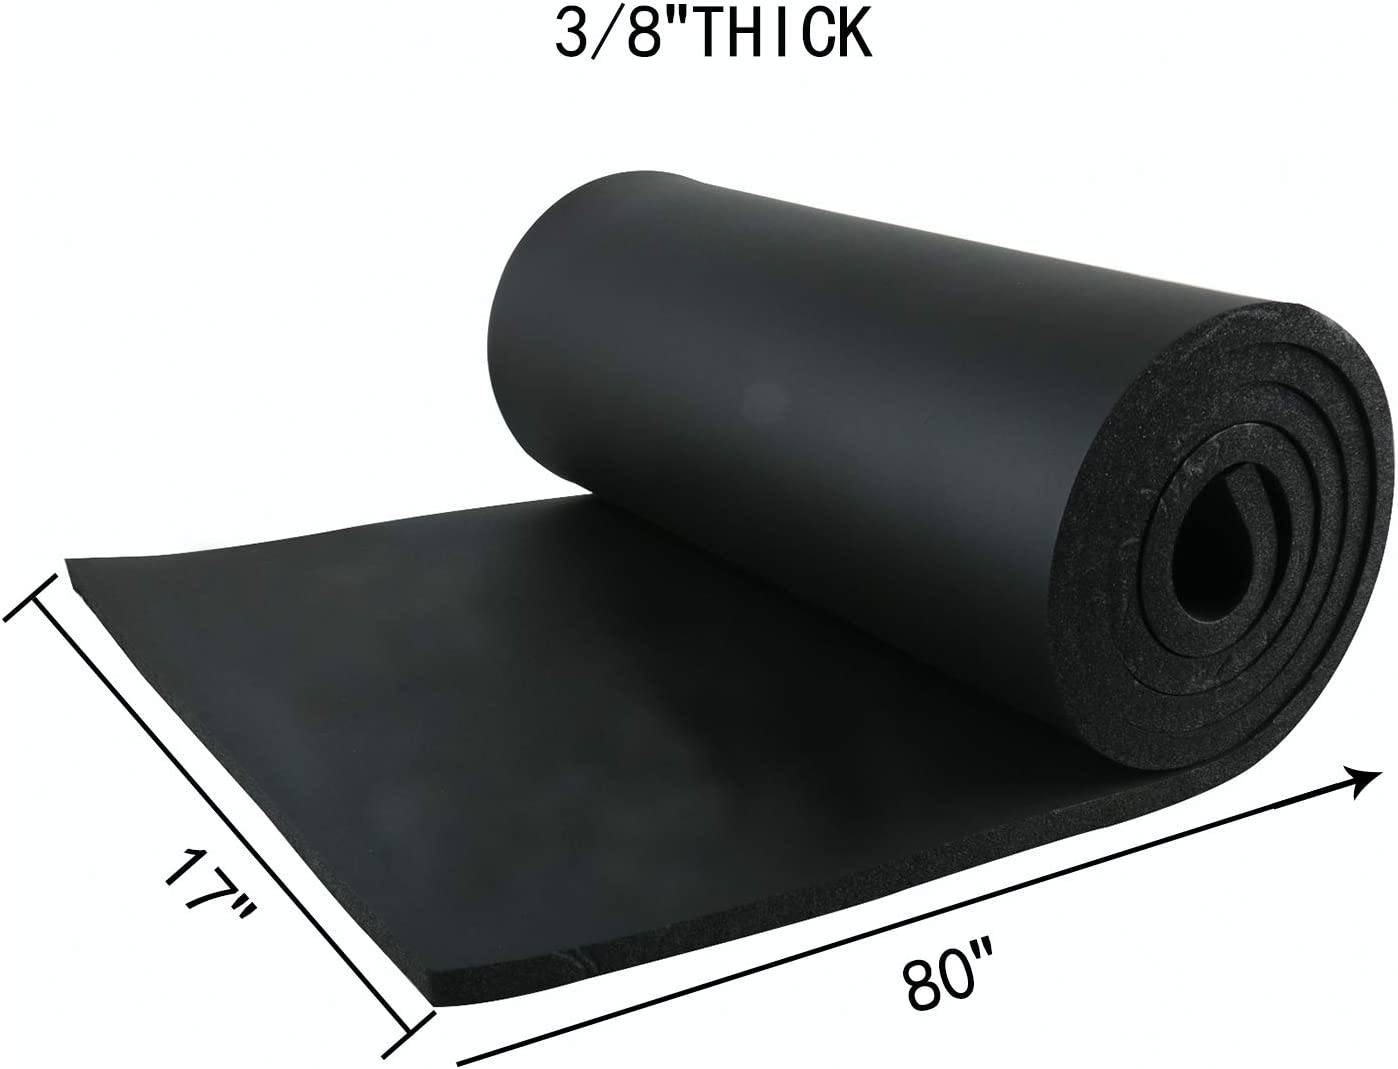 Crafts Cut to Multiple Dimensions and Lengths Cosplay 1//8 Thick x 13 Wide x 80 Long; No Adhesive Costume Homend Sponge Neoprene Without Adhesive Foam Rubber Sheet Gaskets DIY